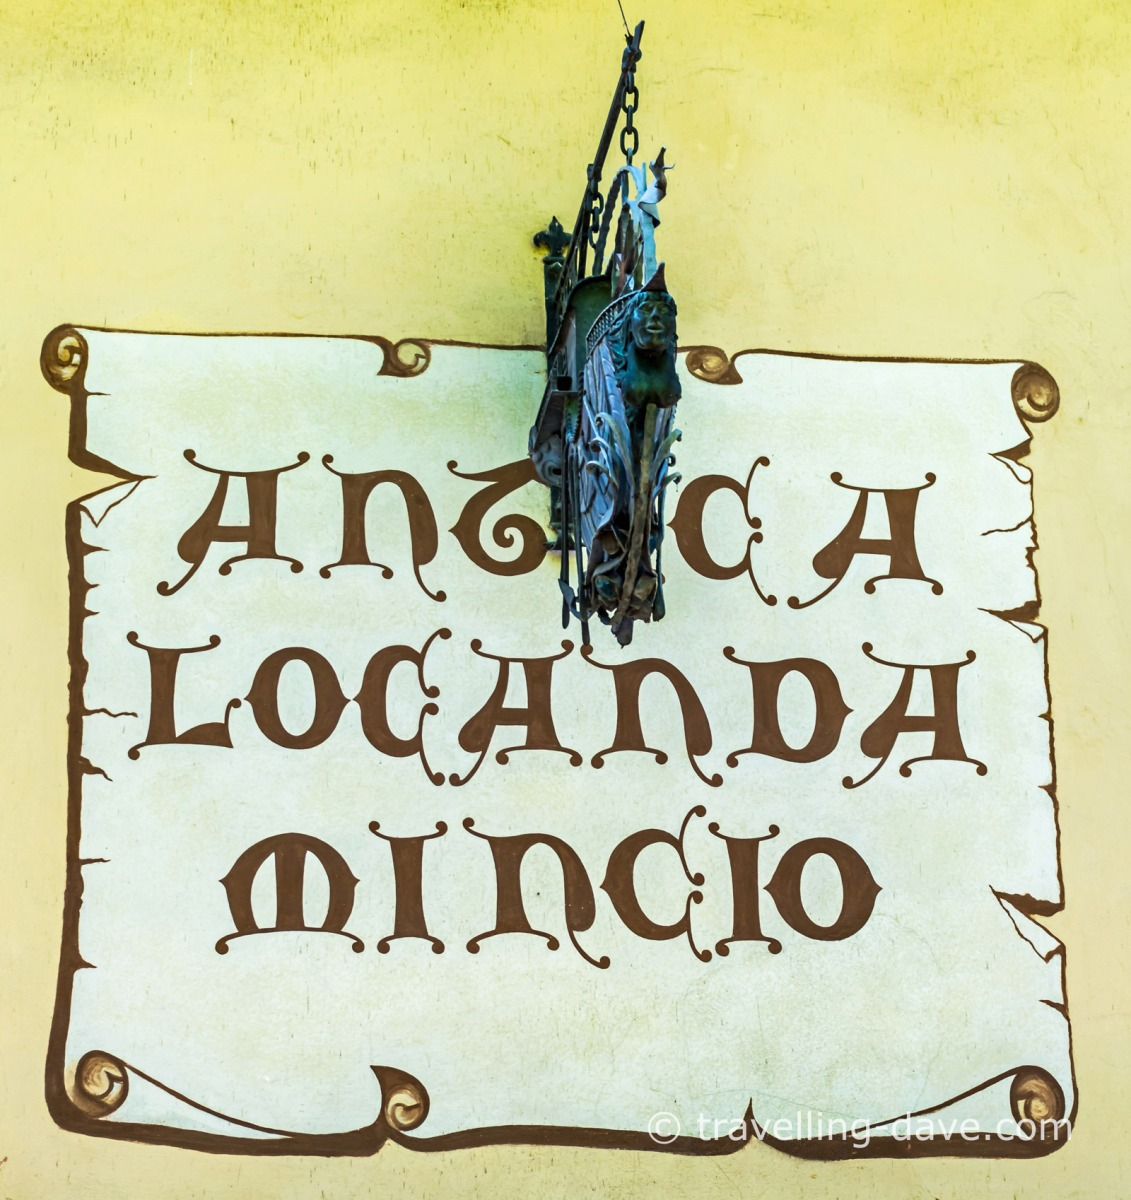 Restaurant sign in Borghetto sul Mincio